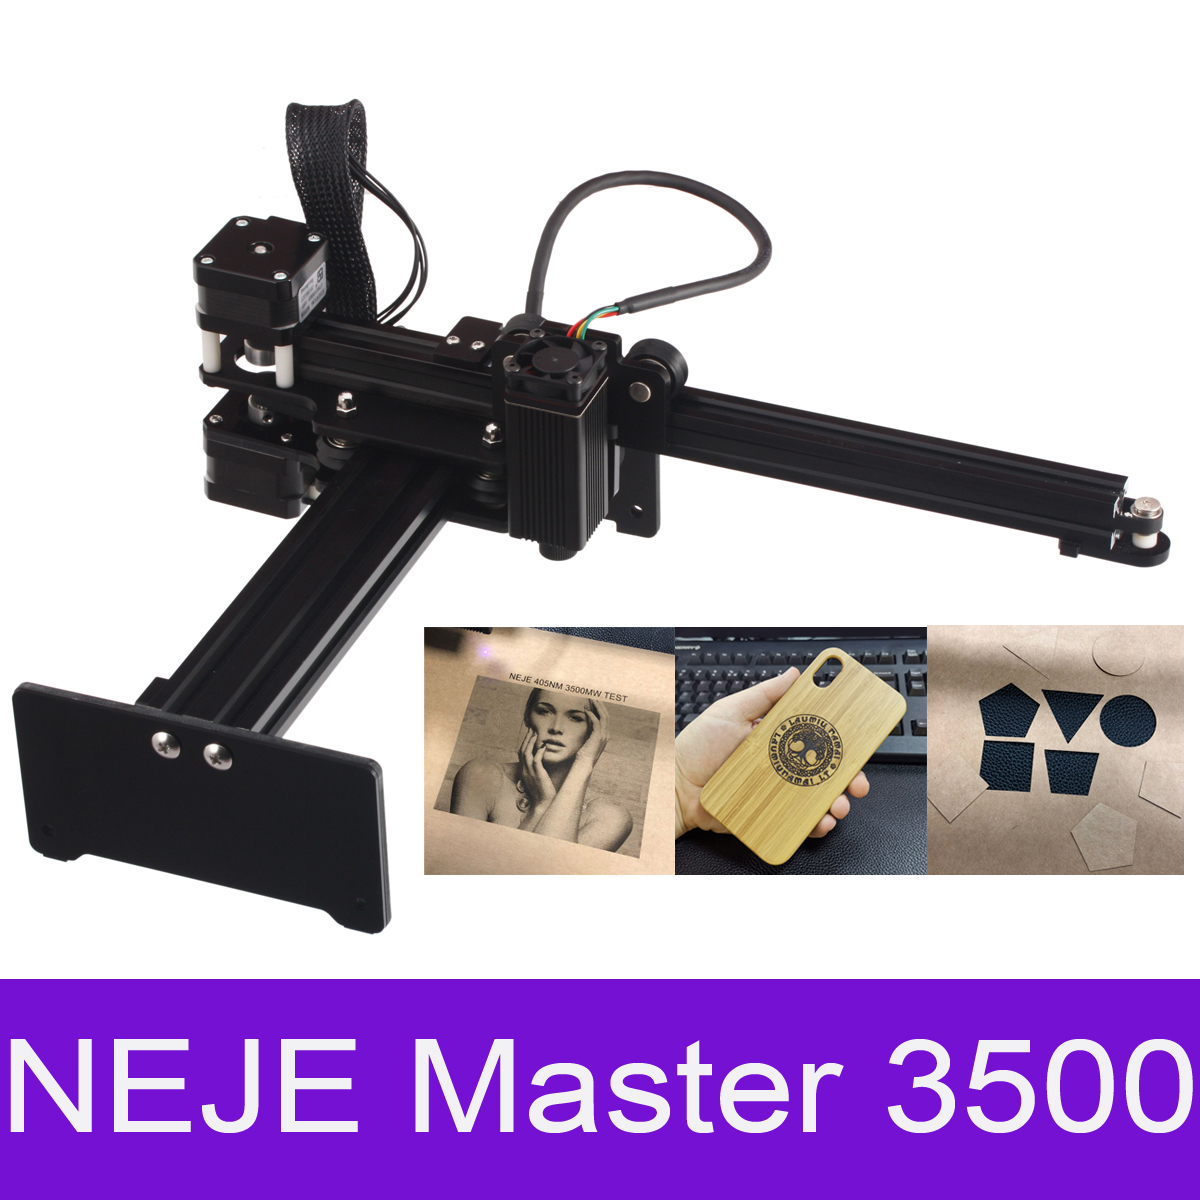 NEJE Laser Cutter Machine Affordable Laser Cutter Machine